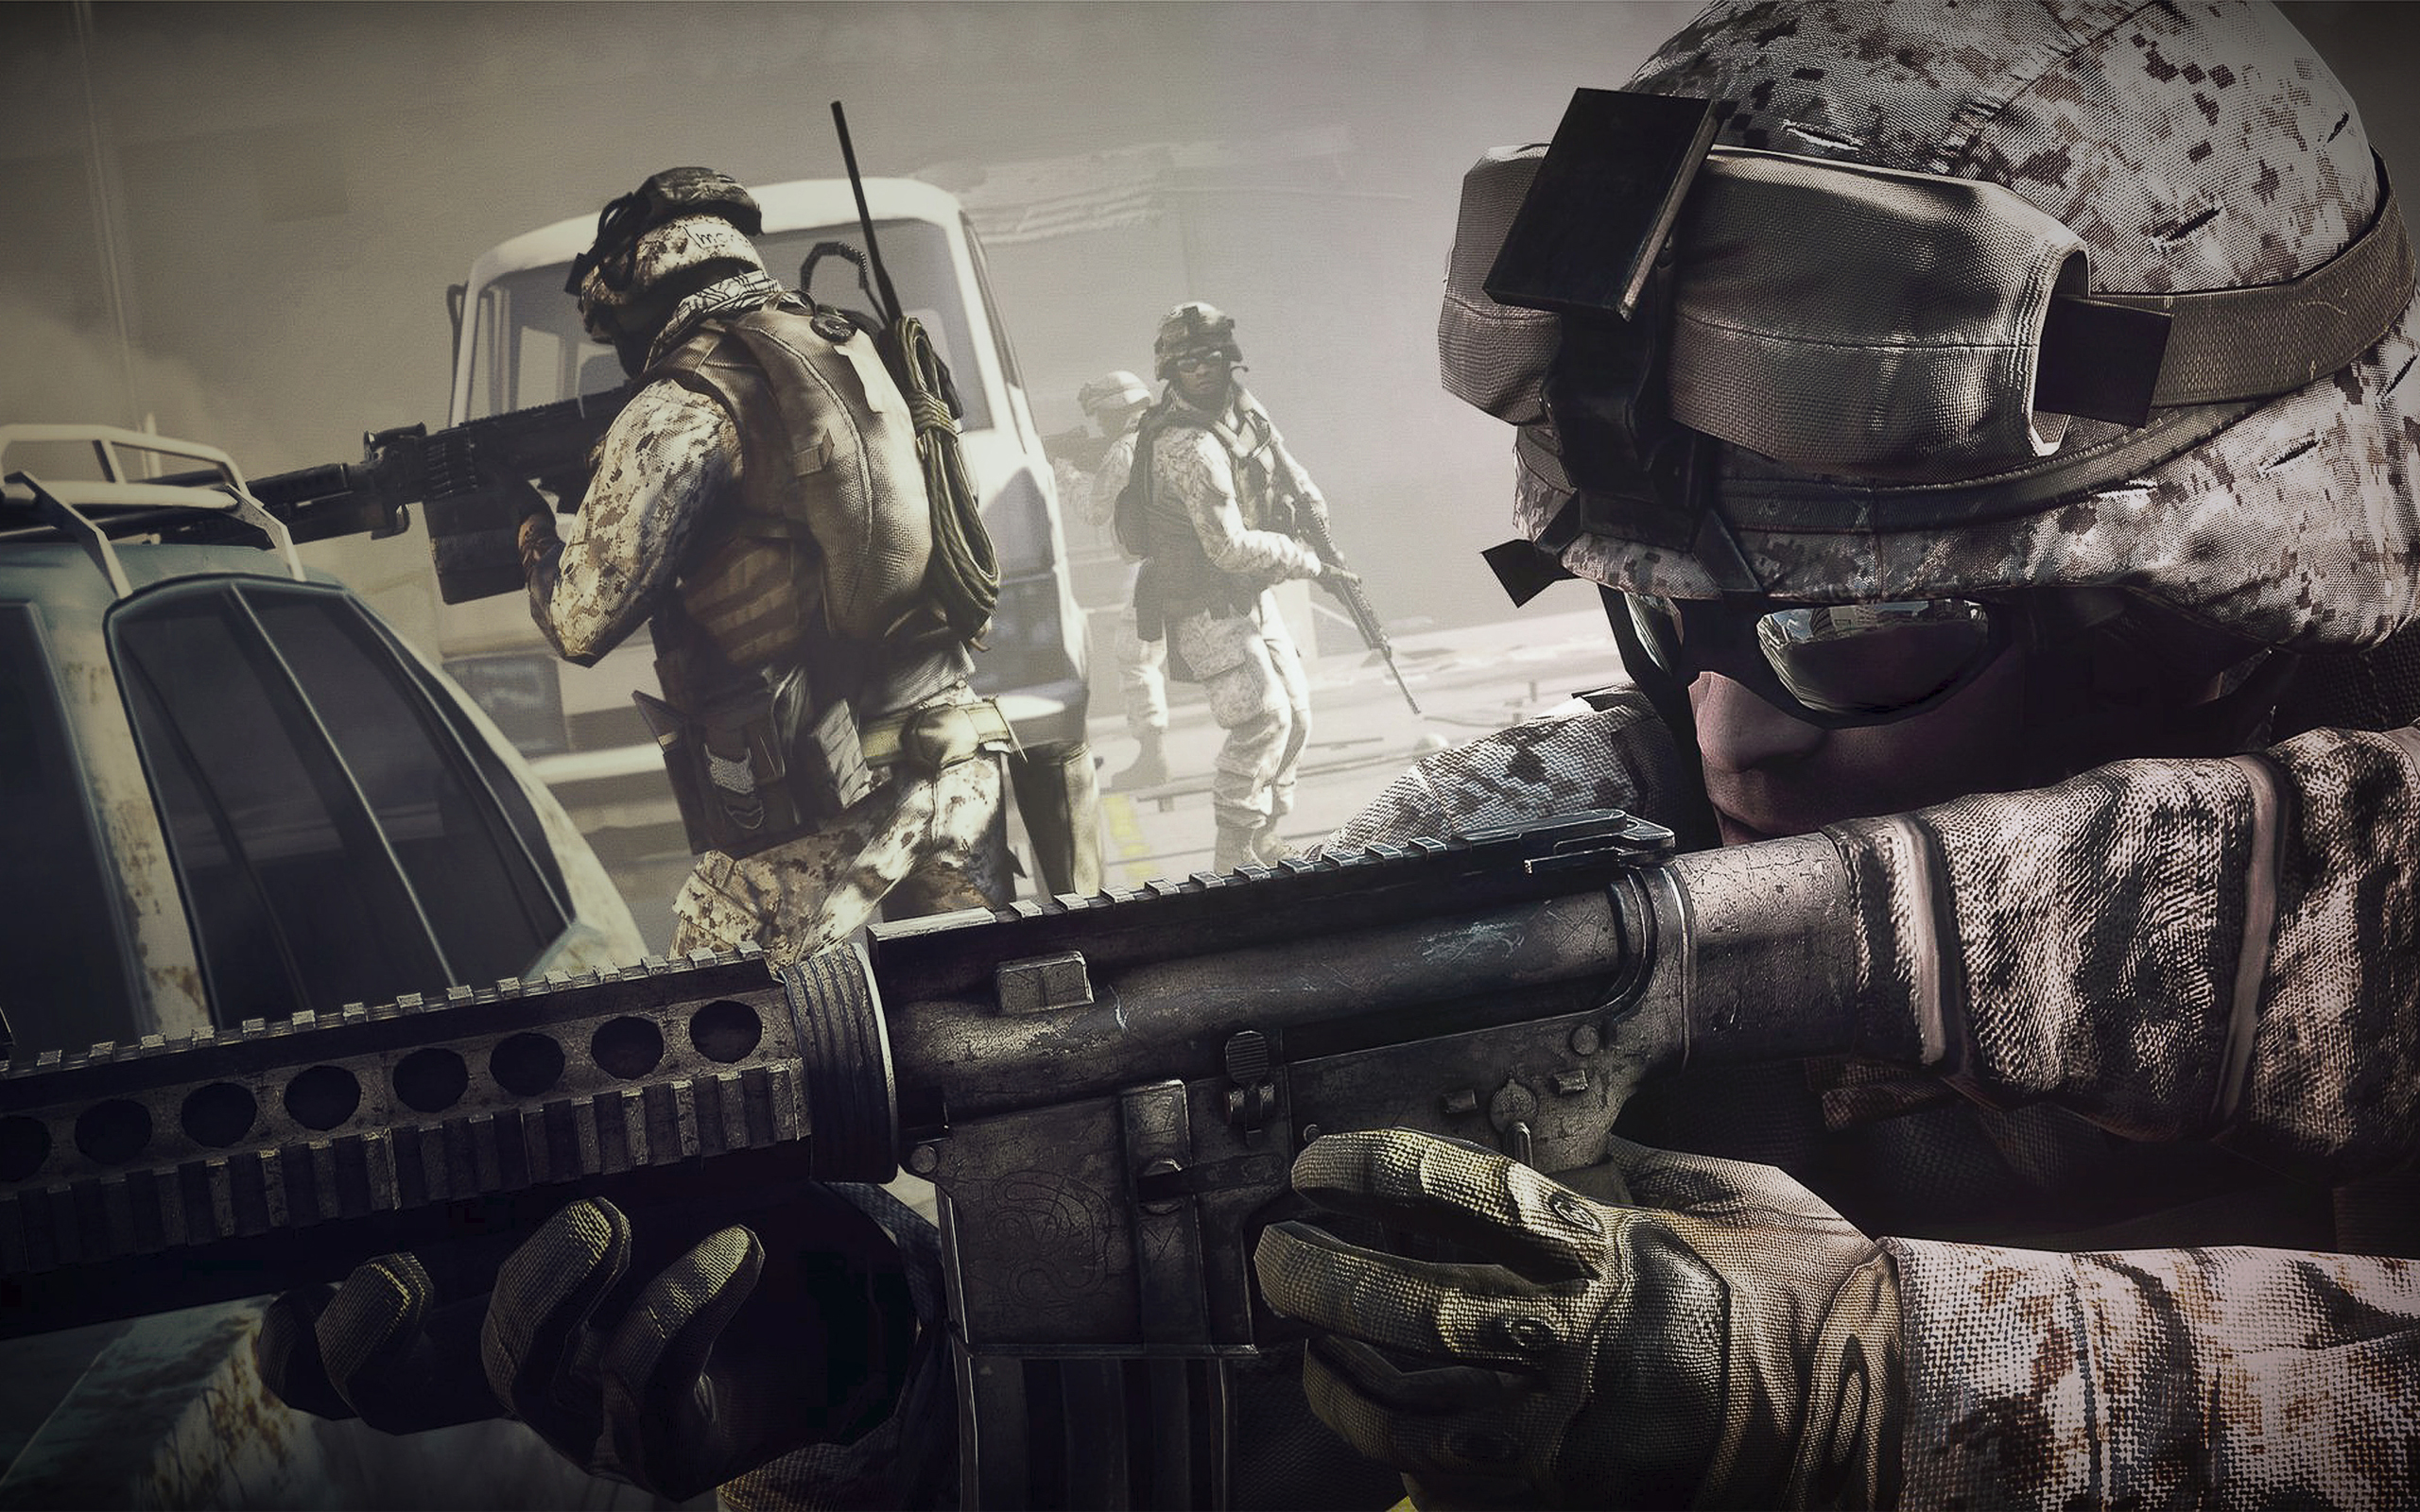 Battlefield 3, games, video games, war, fire, soldiers, weapons